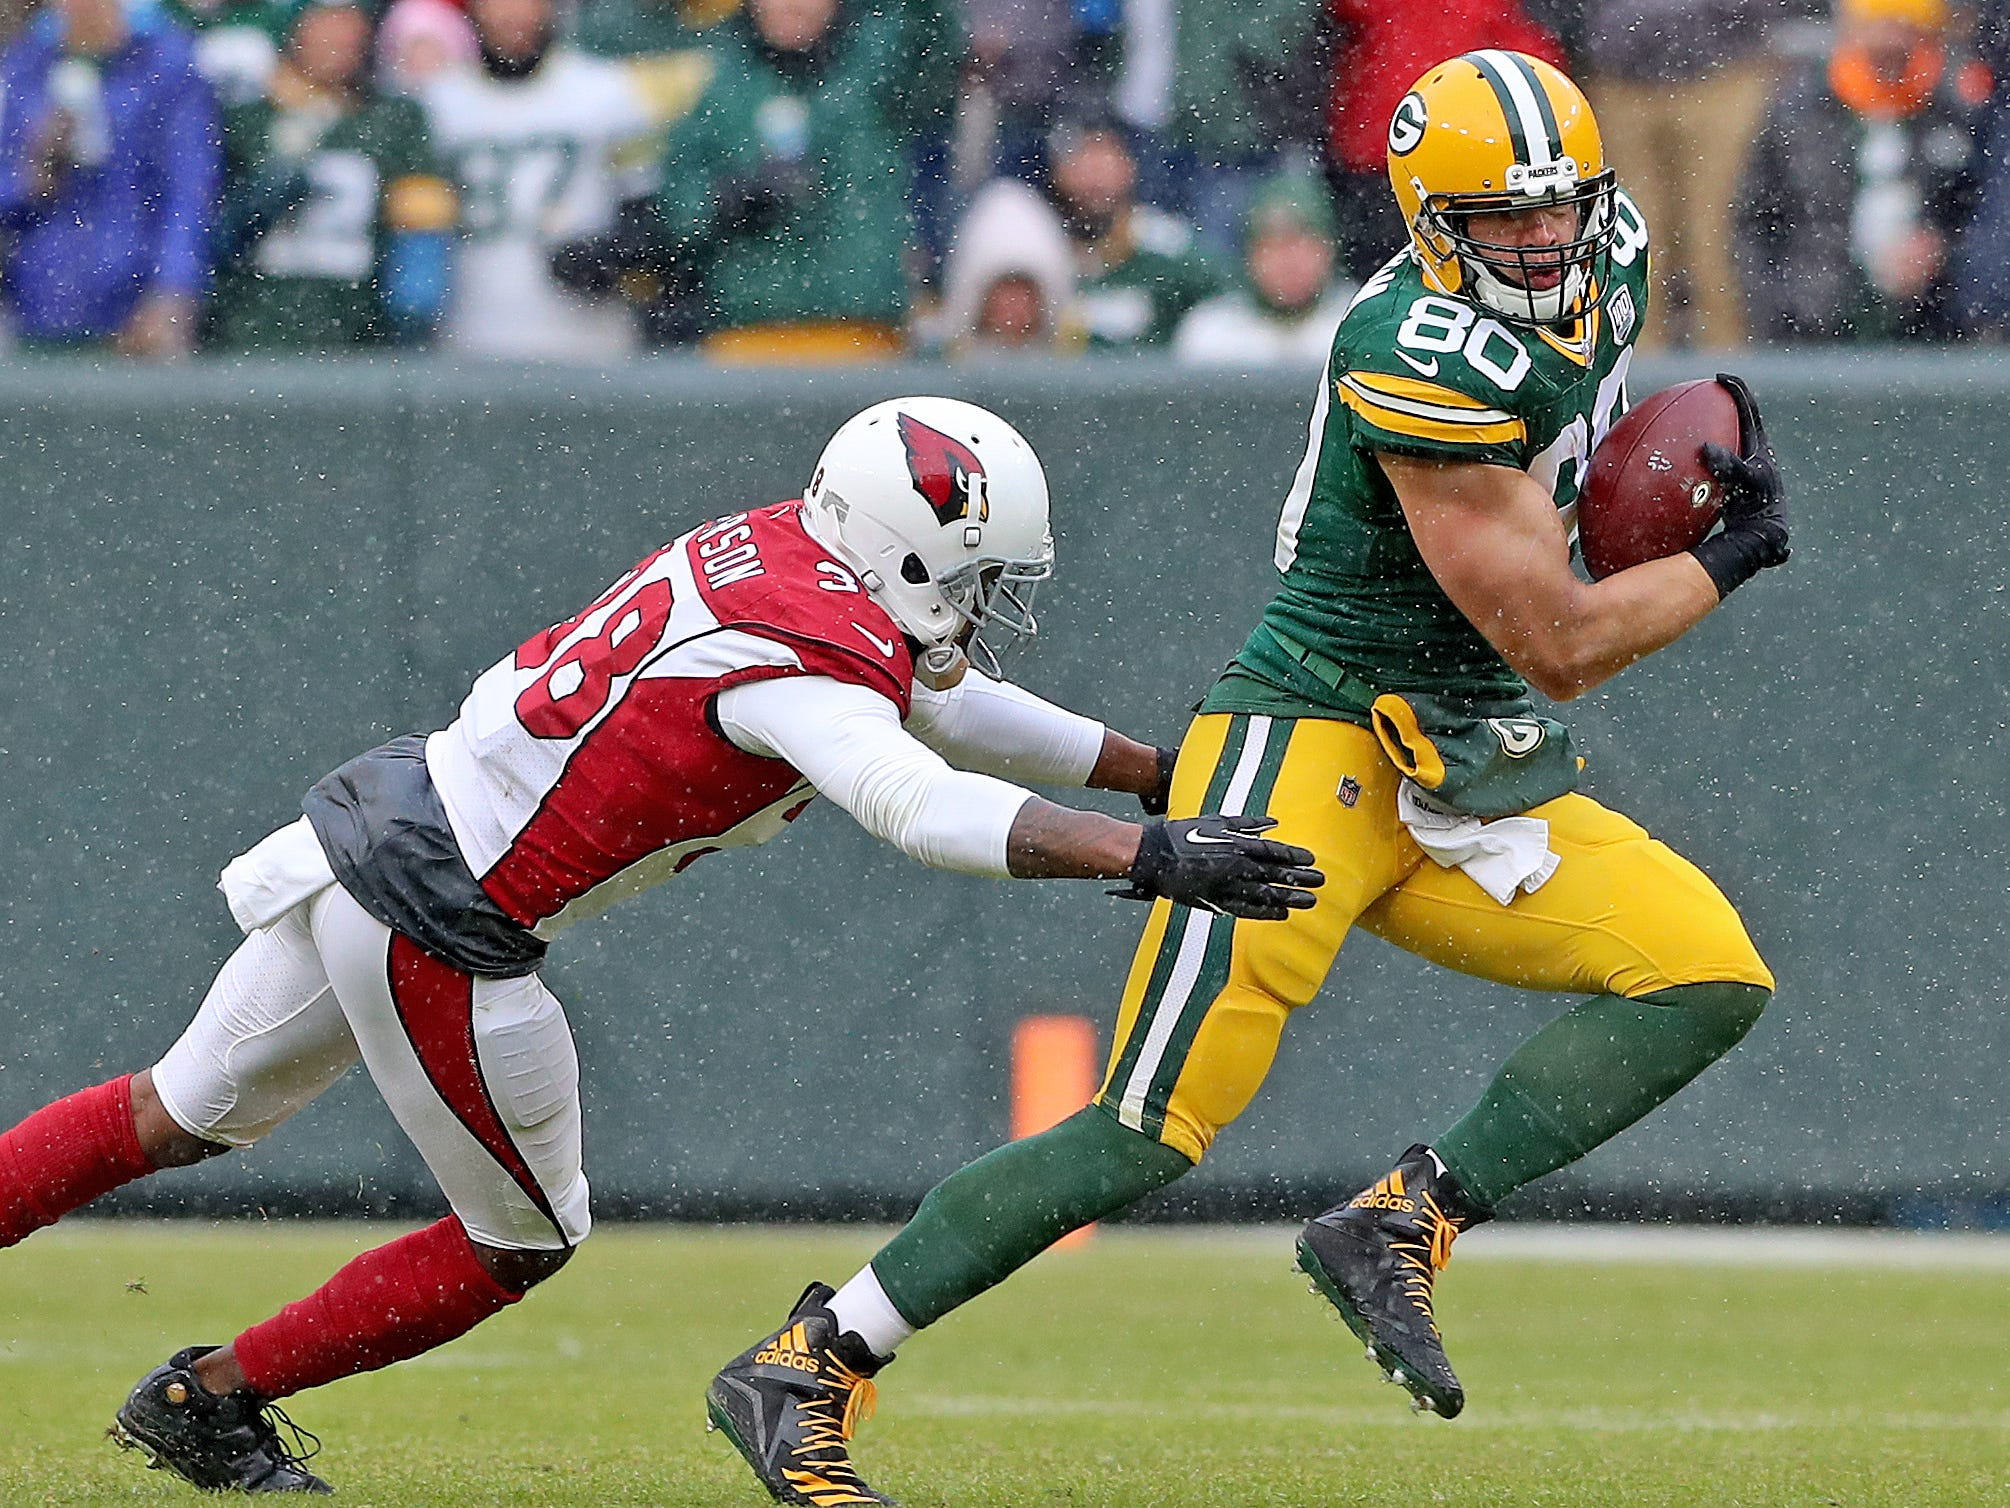 against the Arizona Cardinals Sunday, December 2, 2018 at Lambeau Field in Green Bay, Wis. Jim Matthews/USA TODAY NETWORK-Wis